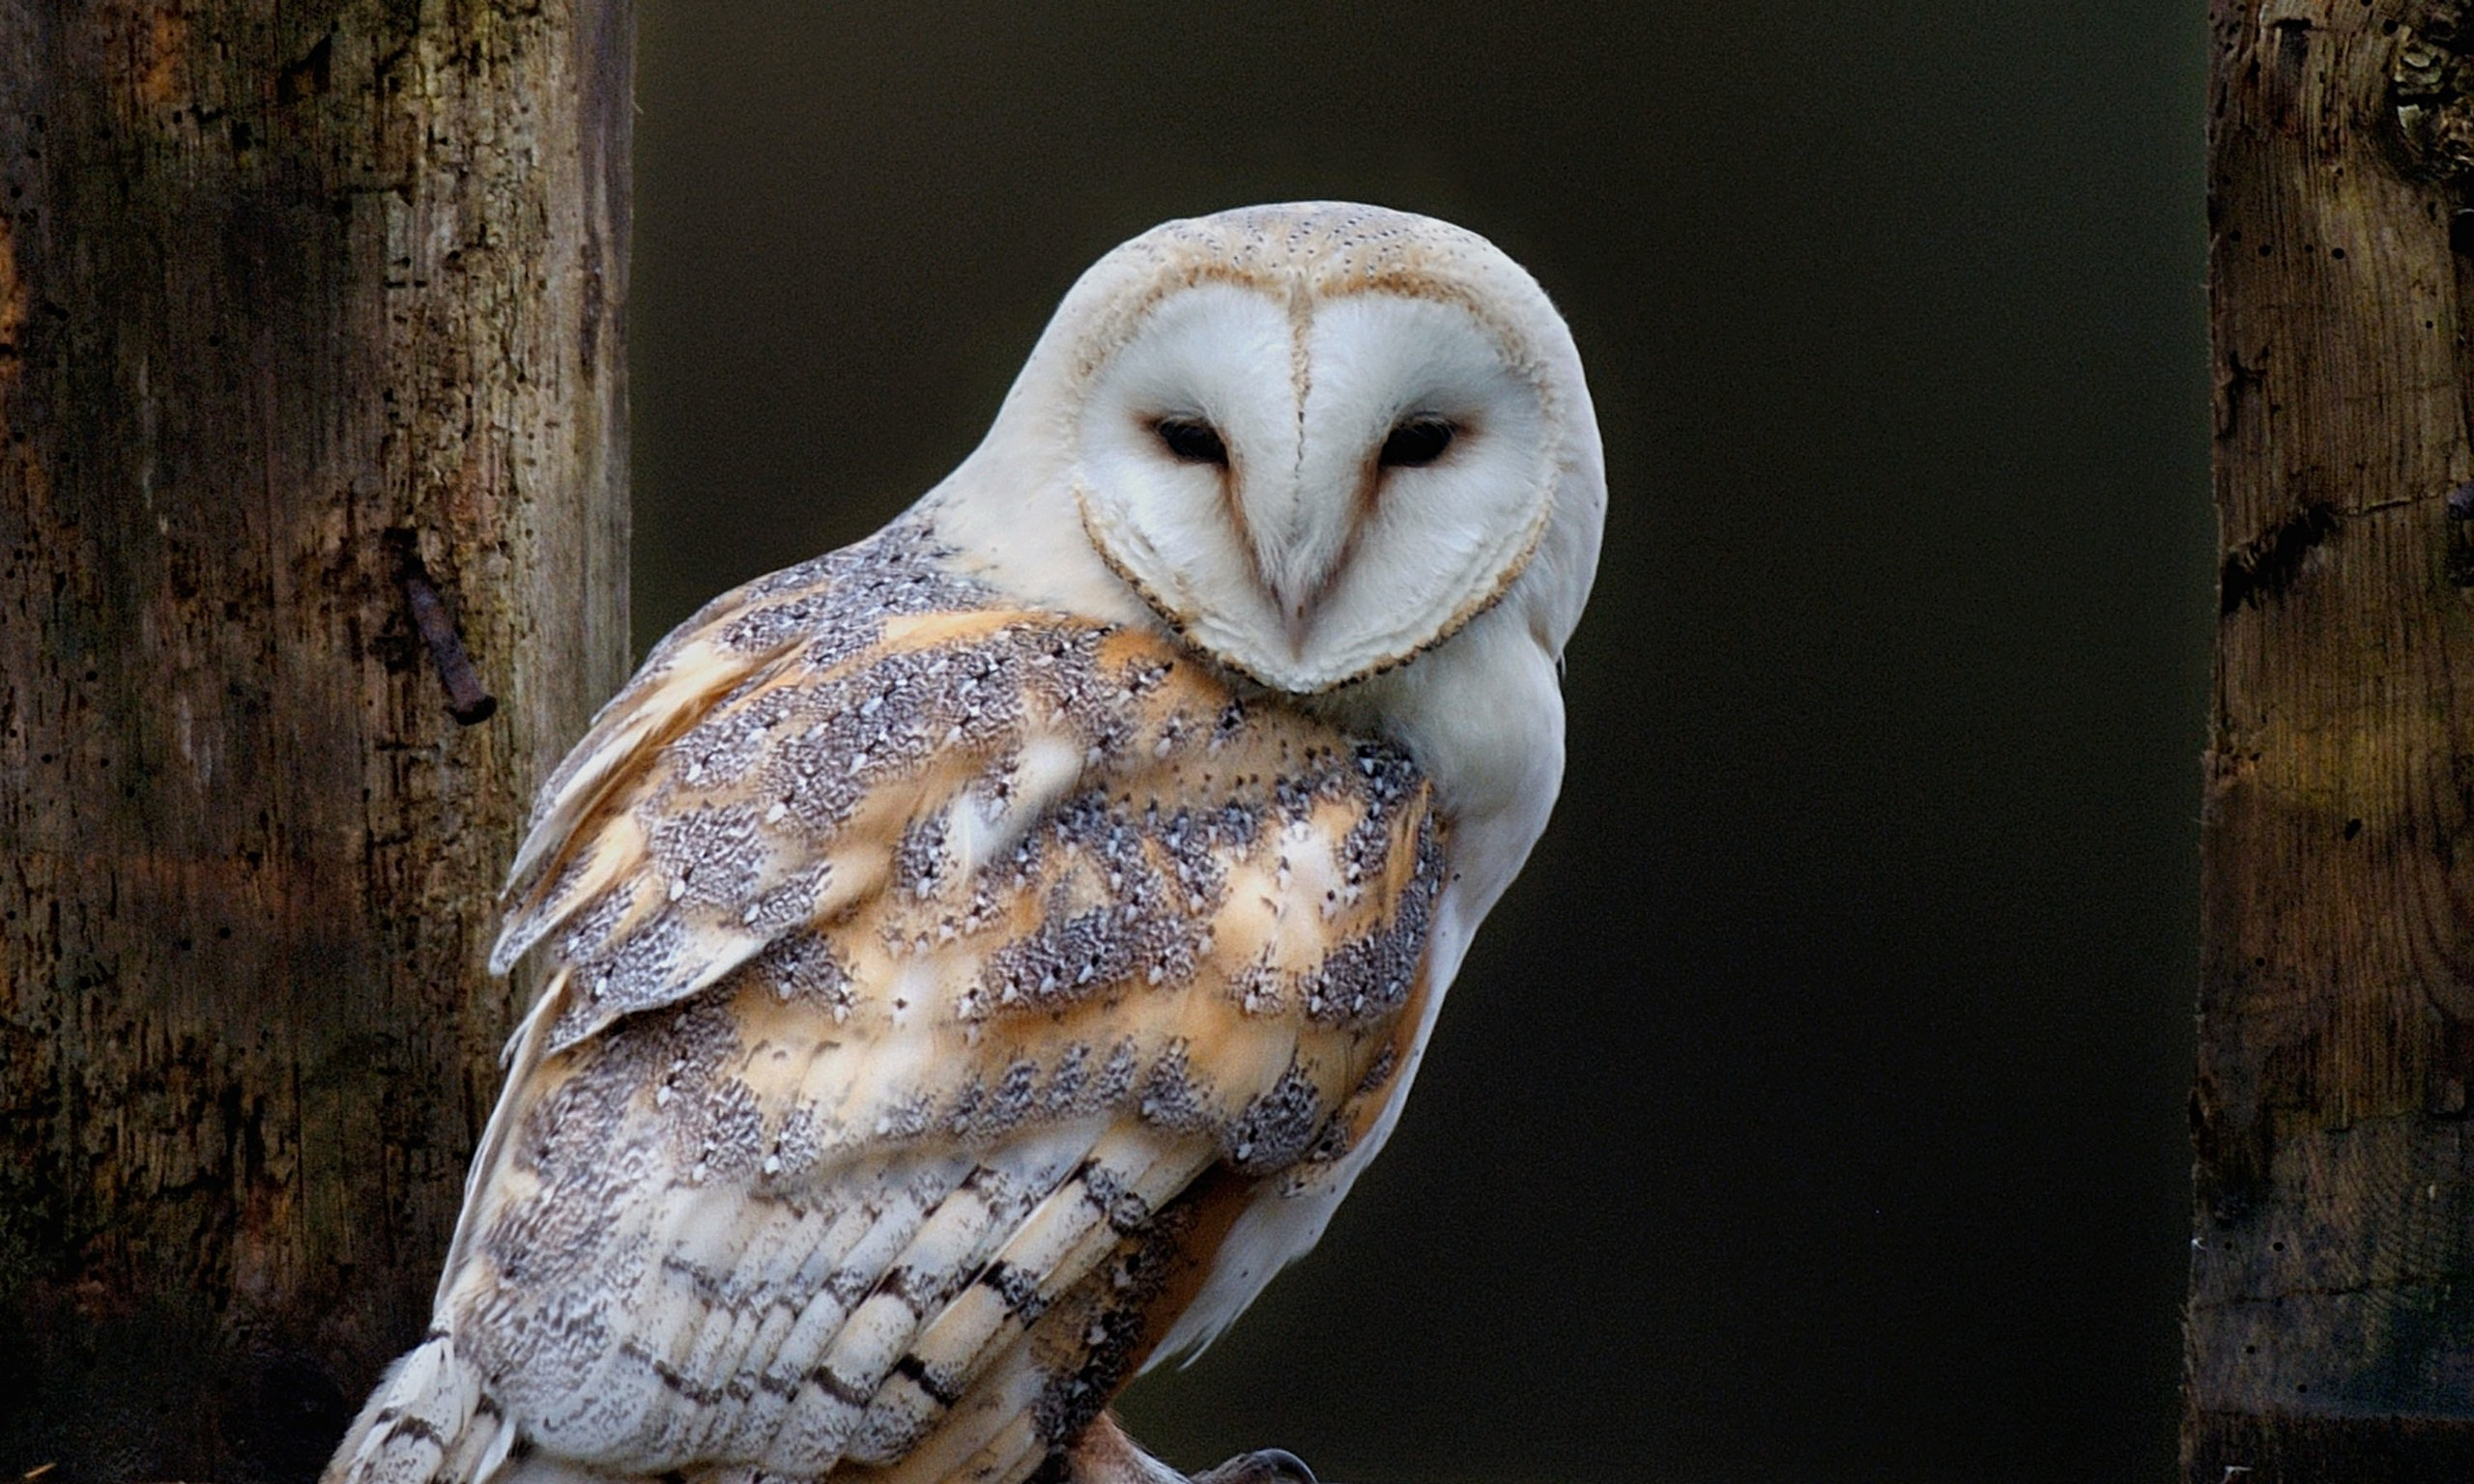 on rat poisons urged to protect barn owls | Environment | The Guardian .